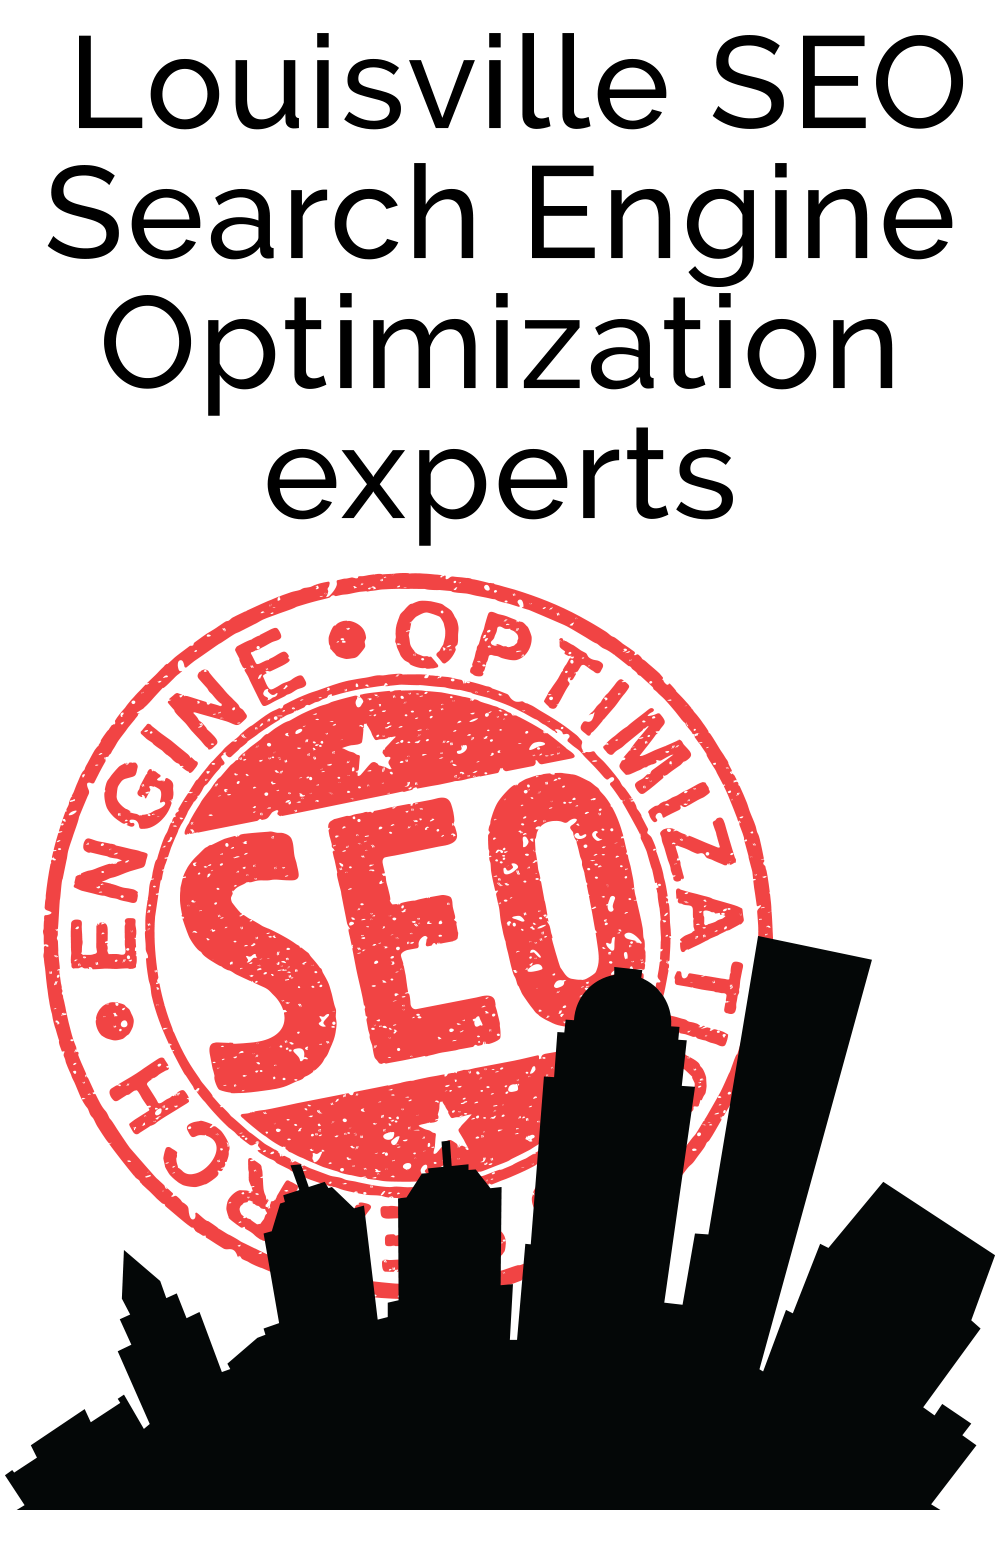 Louisville SEO Search Engine Optimization Experts